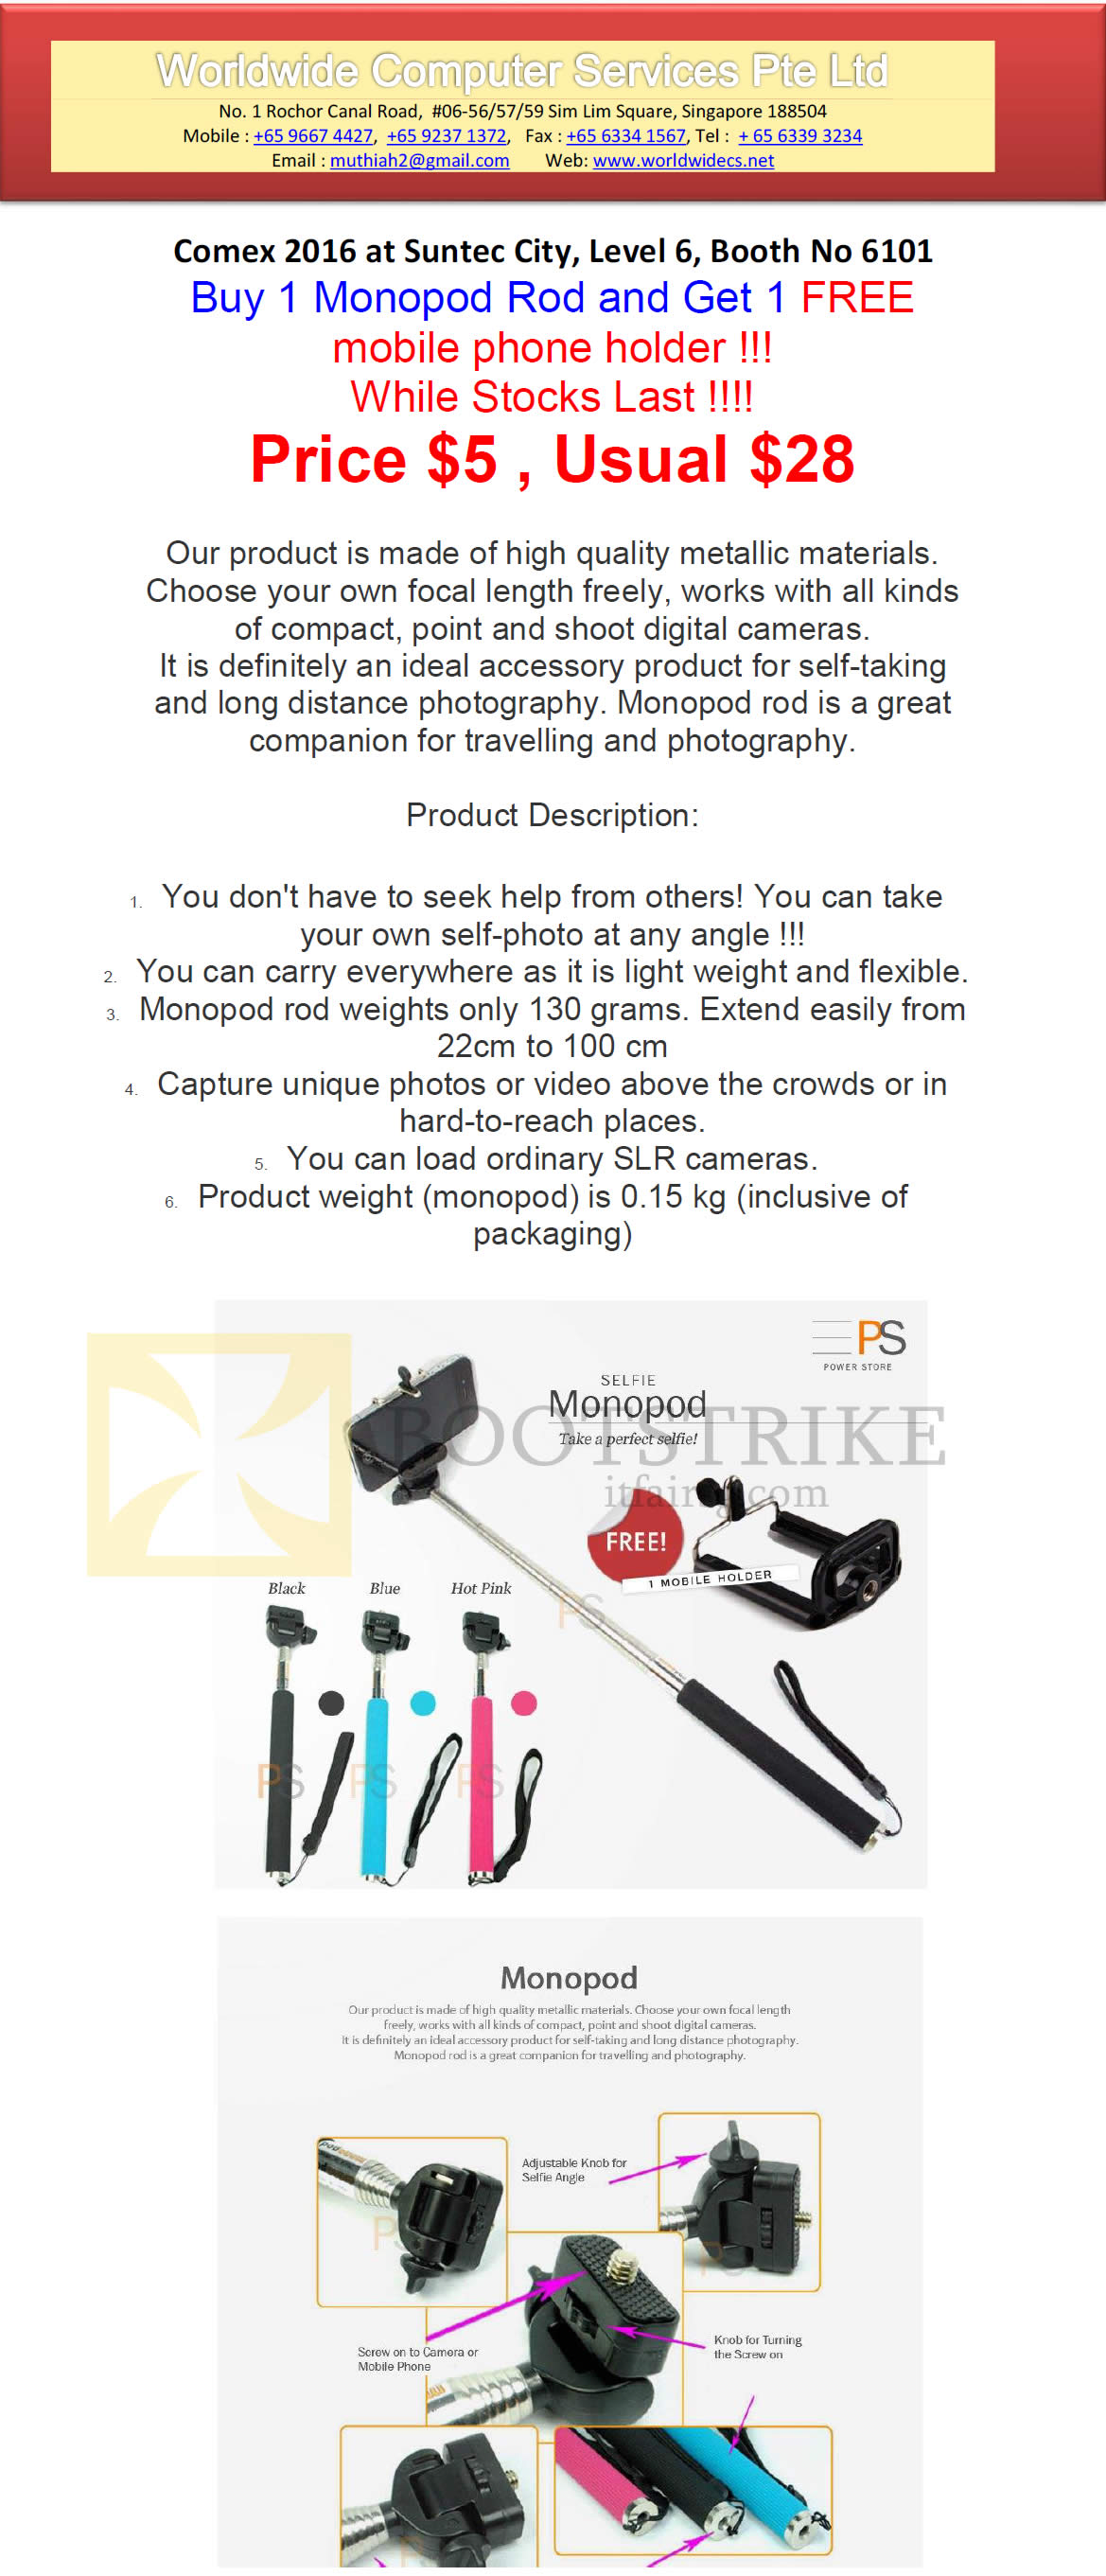 COMEX 2016 price list image brochure of Worldwide Computer Mobile Phone Holder Monopod Rod